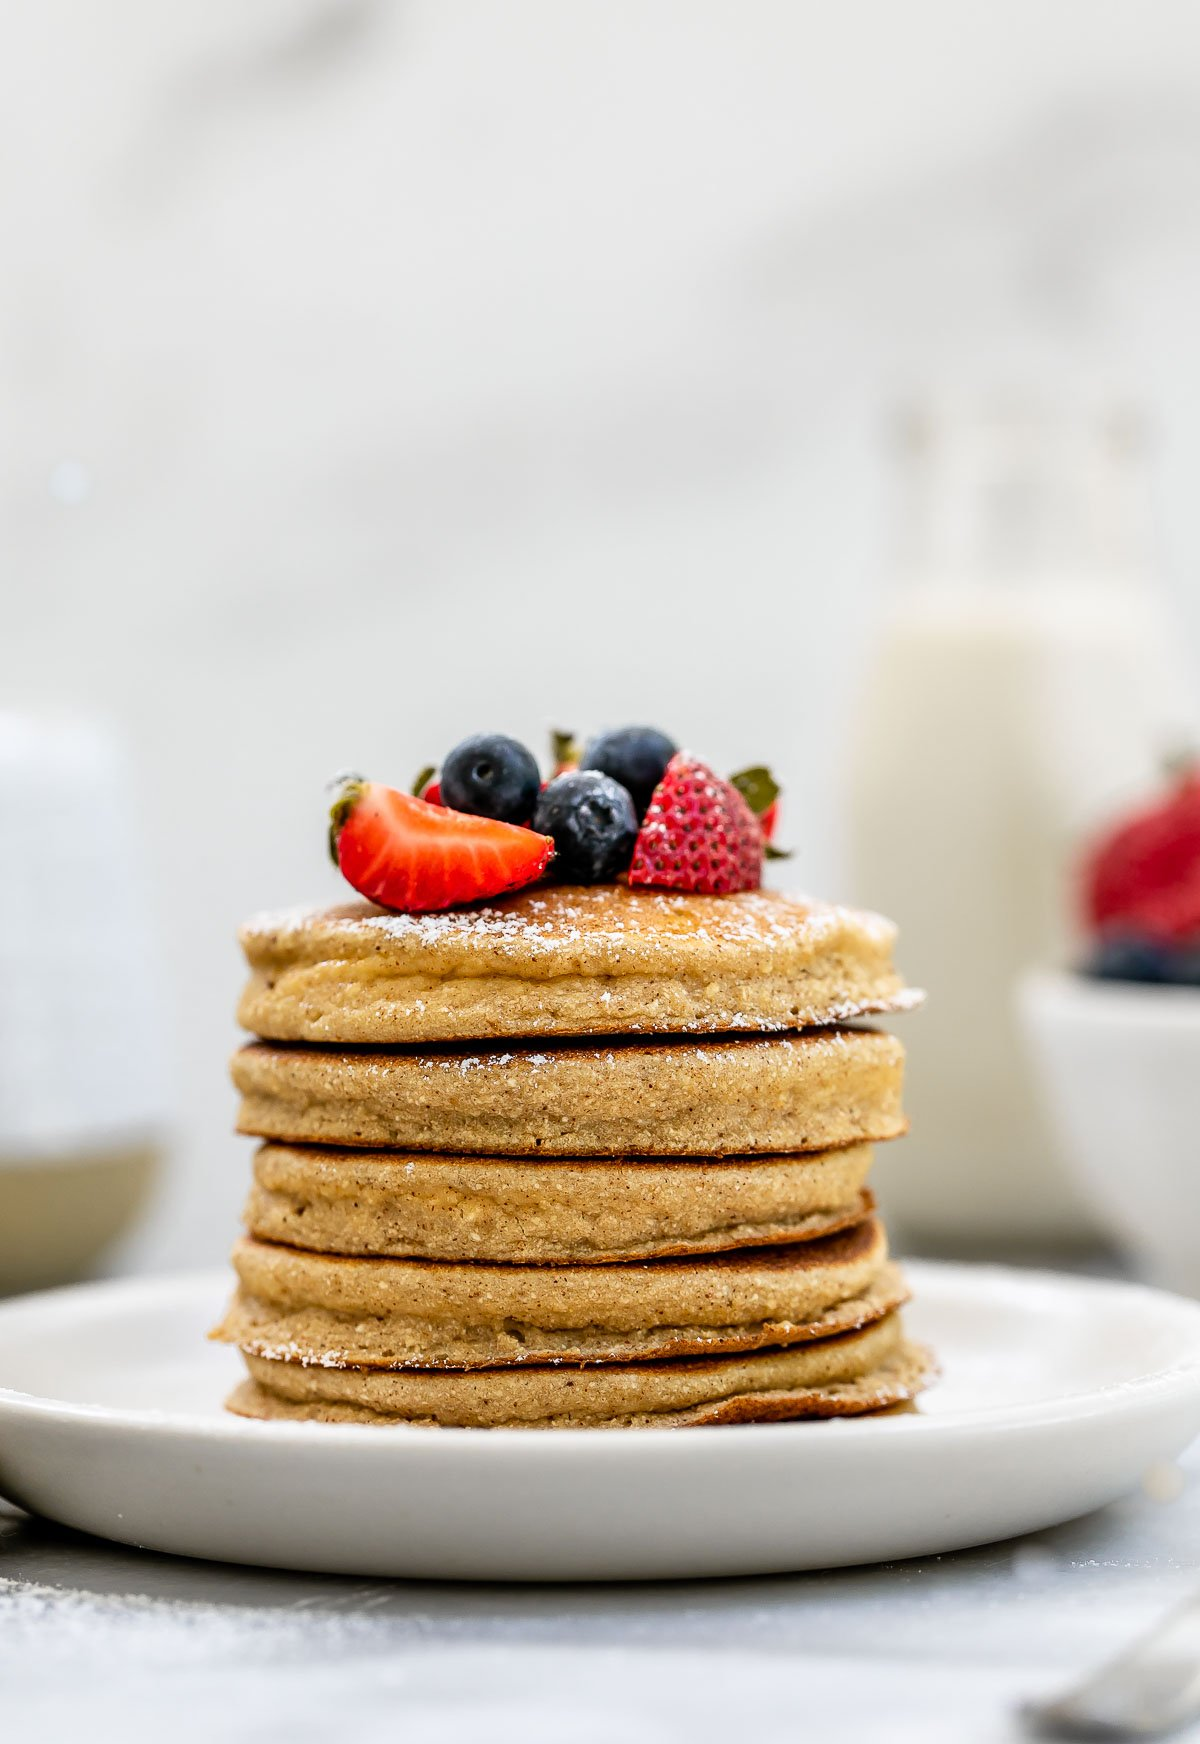 Coconut flour pancakes stacked on a plate with berries on top.